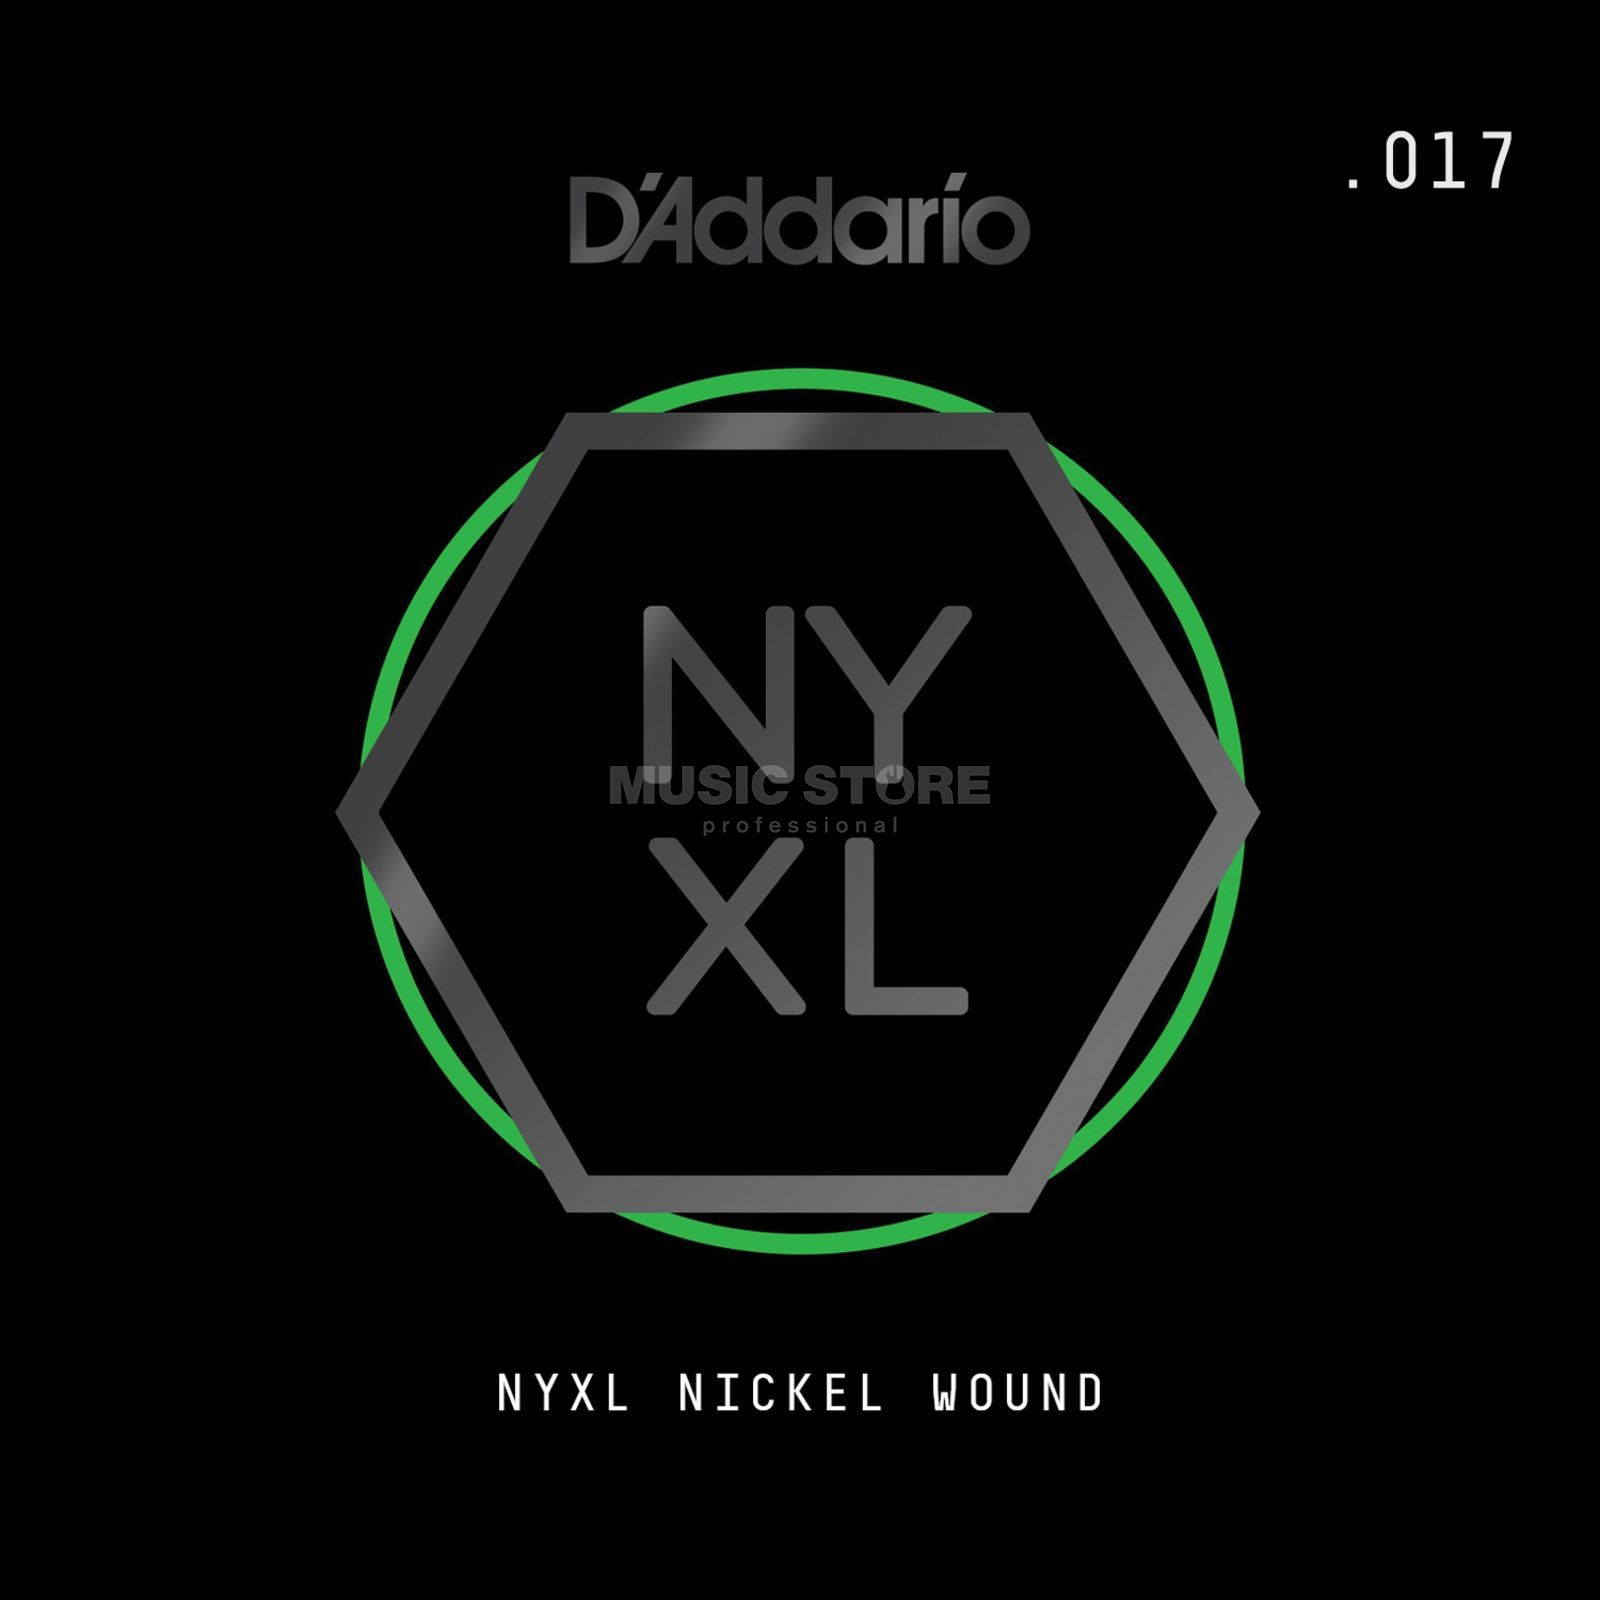 D'Addario NYNW017 Single String Nickel Wound Product Image